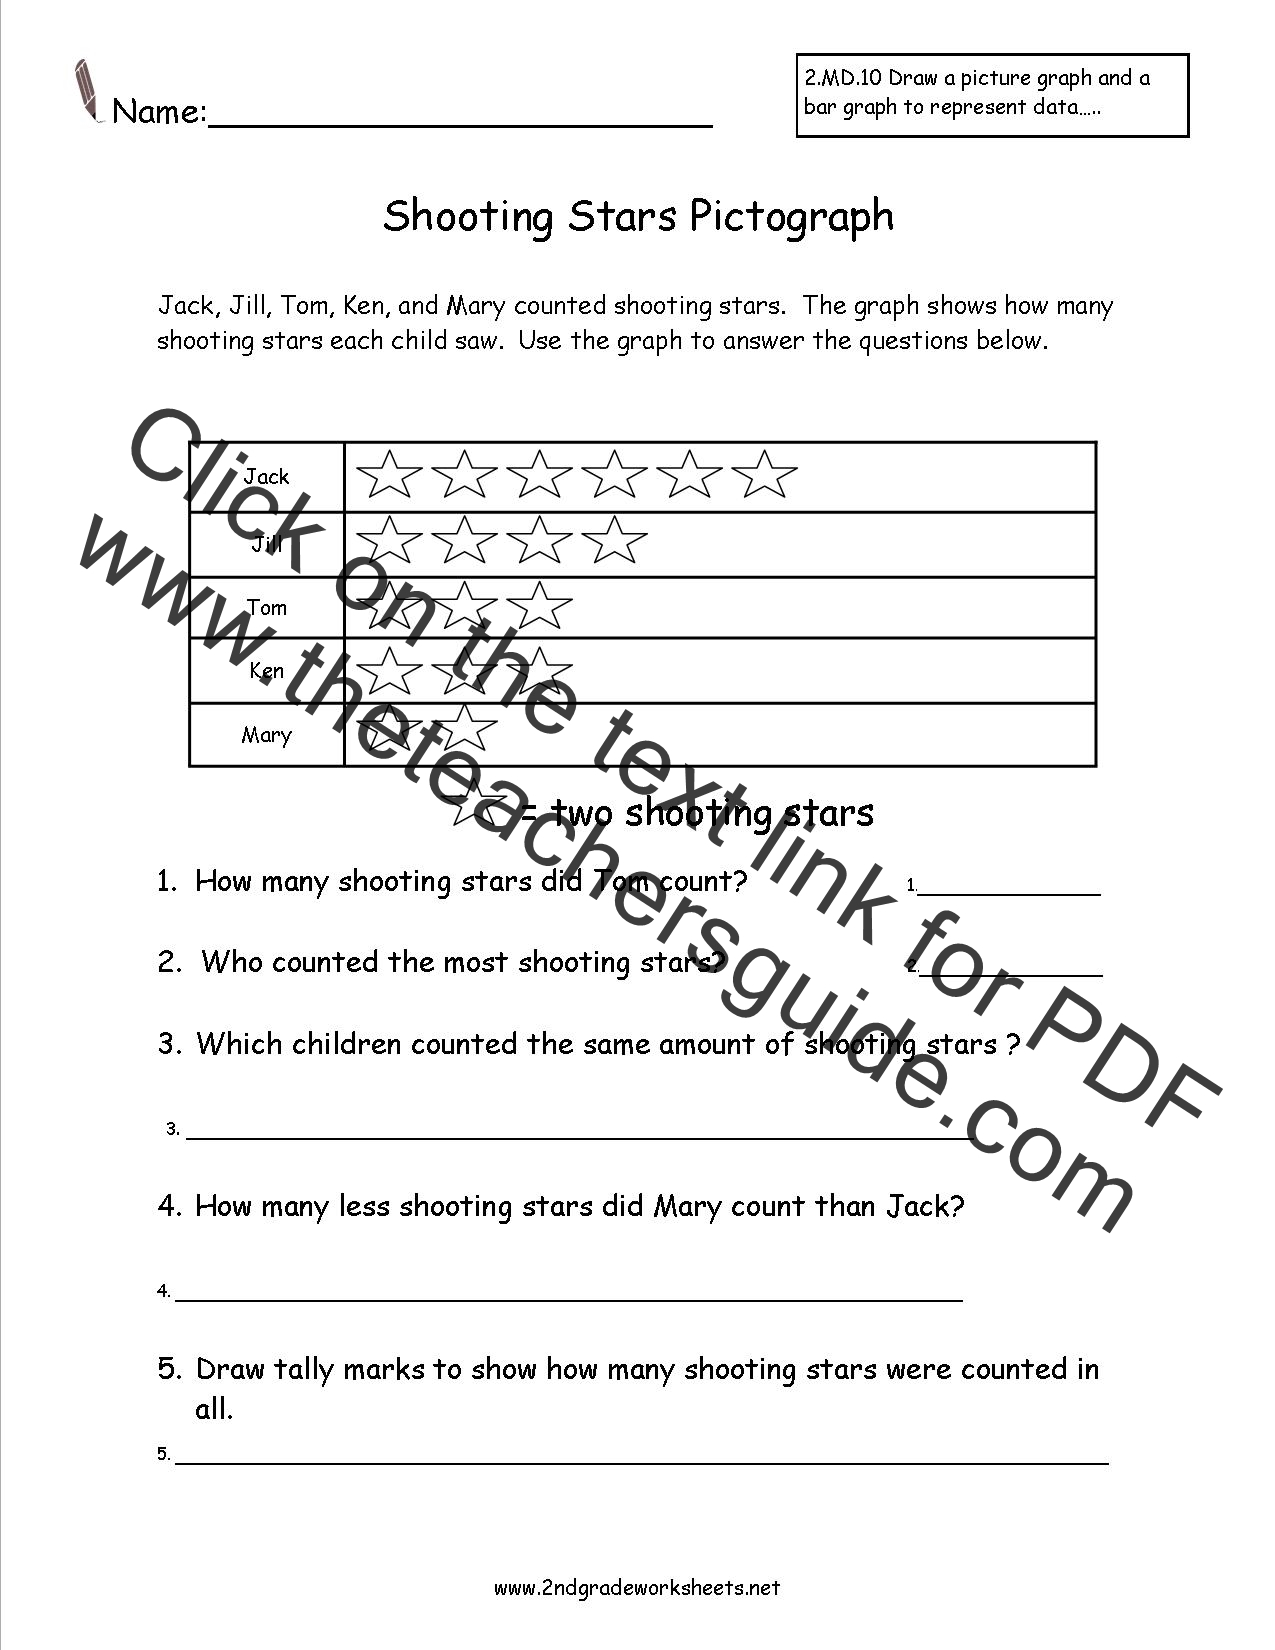 Second Grade Reading and Creating Pictograph Worksheets – 3rd Grade Graphing Worksheets